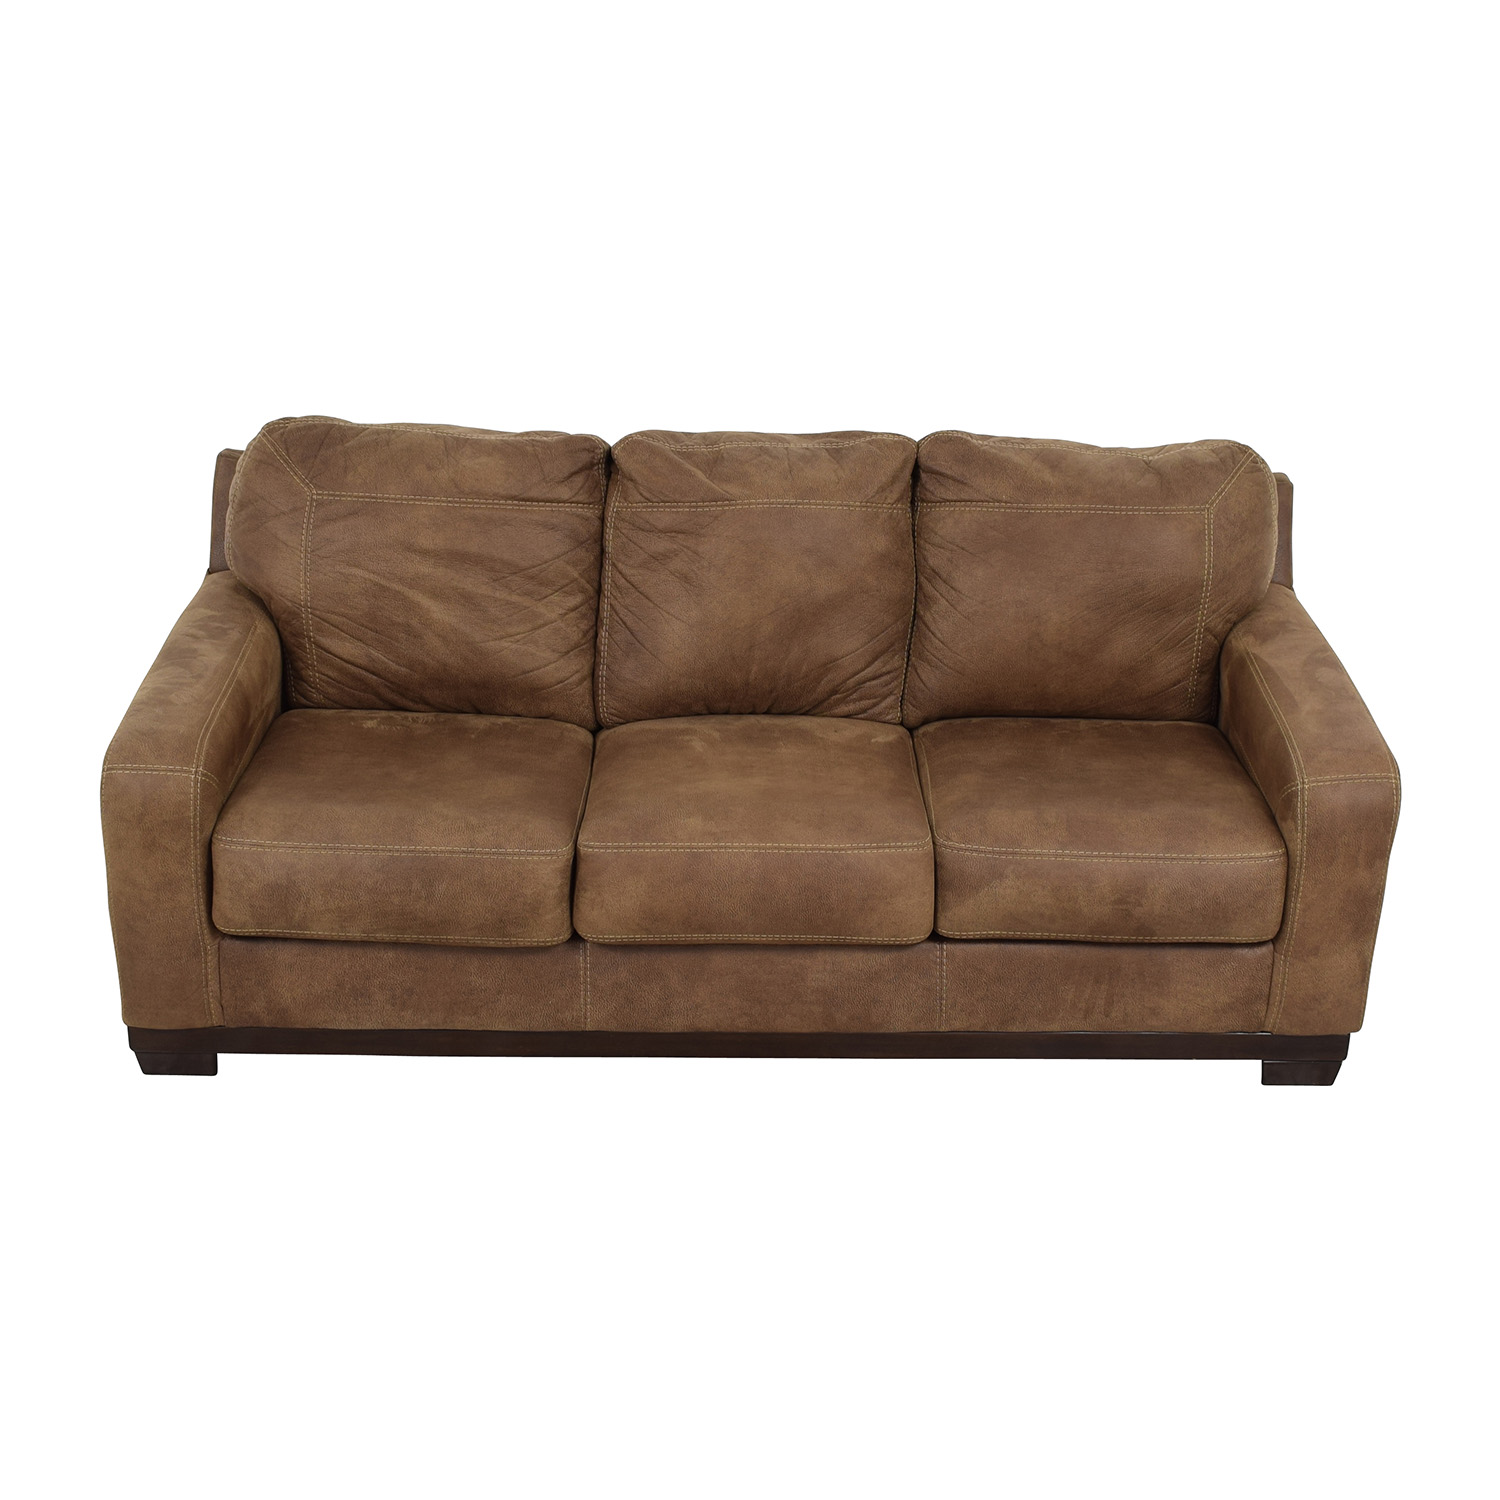 shop Ashley Furniture Kylun Brown Three-Cushion Couch Ashley Furniture Sofas